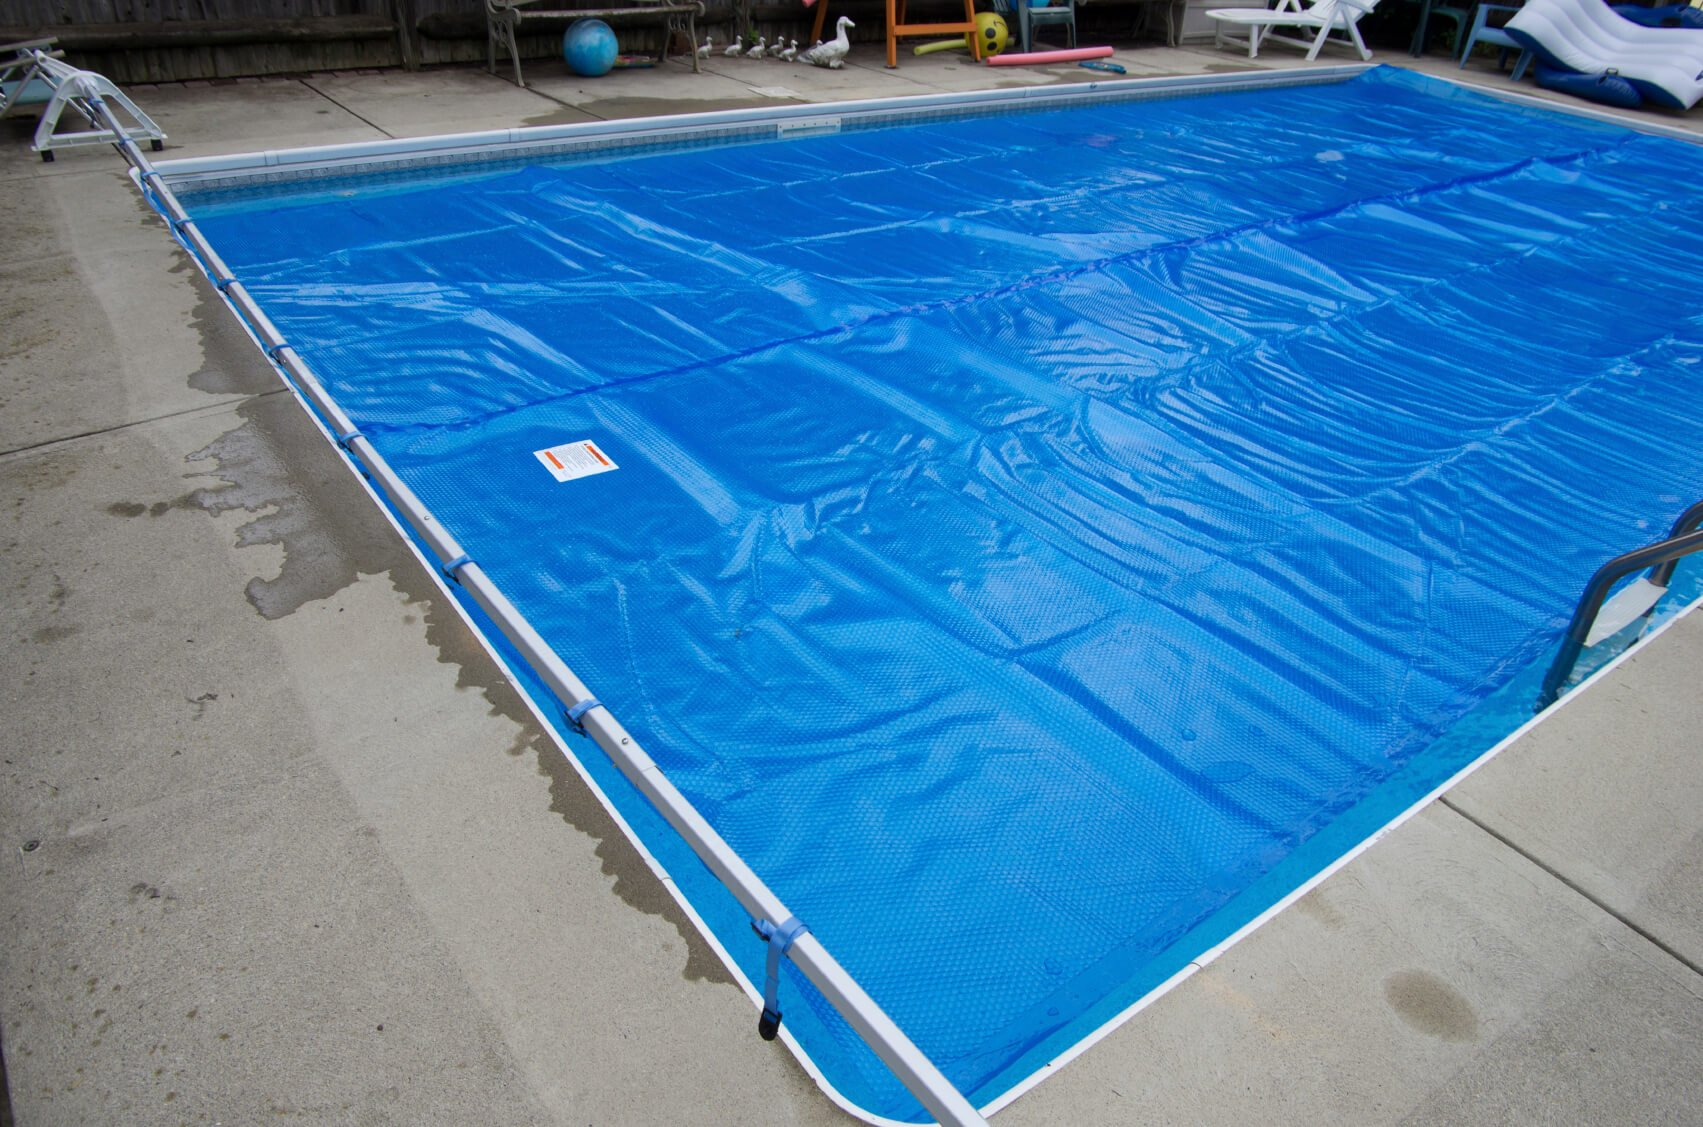 This is a long rectangular pool with a standard solar cover on it. The tarp is connected to a bar on the end of the pool for easy retraction. This reduces the hassle of constantly replacing and removing the cover if you are using it to help heat the water.